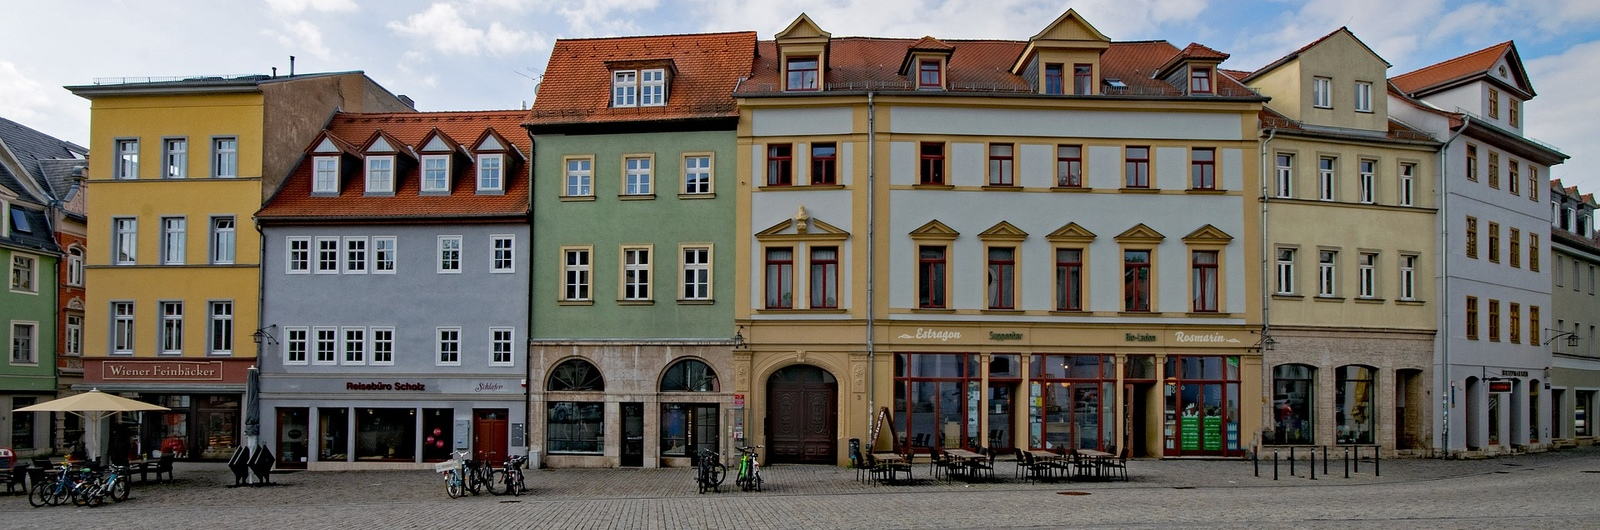 weimar city header